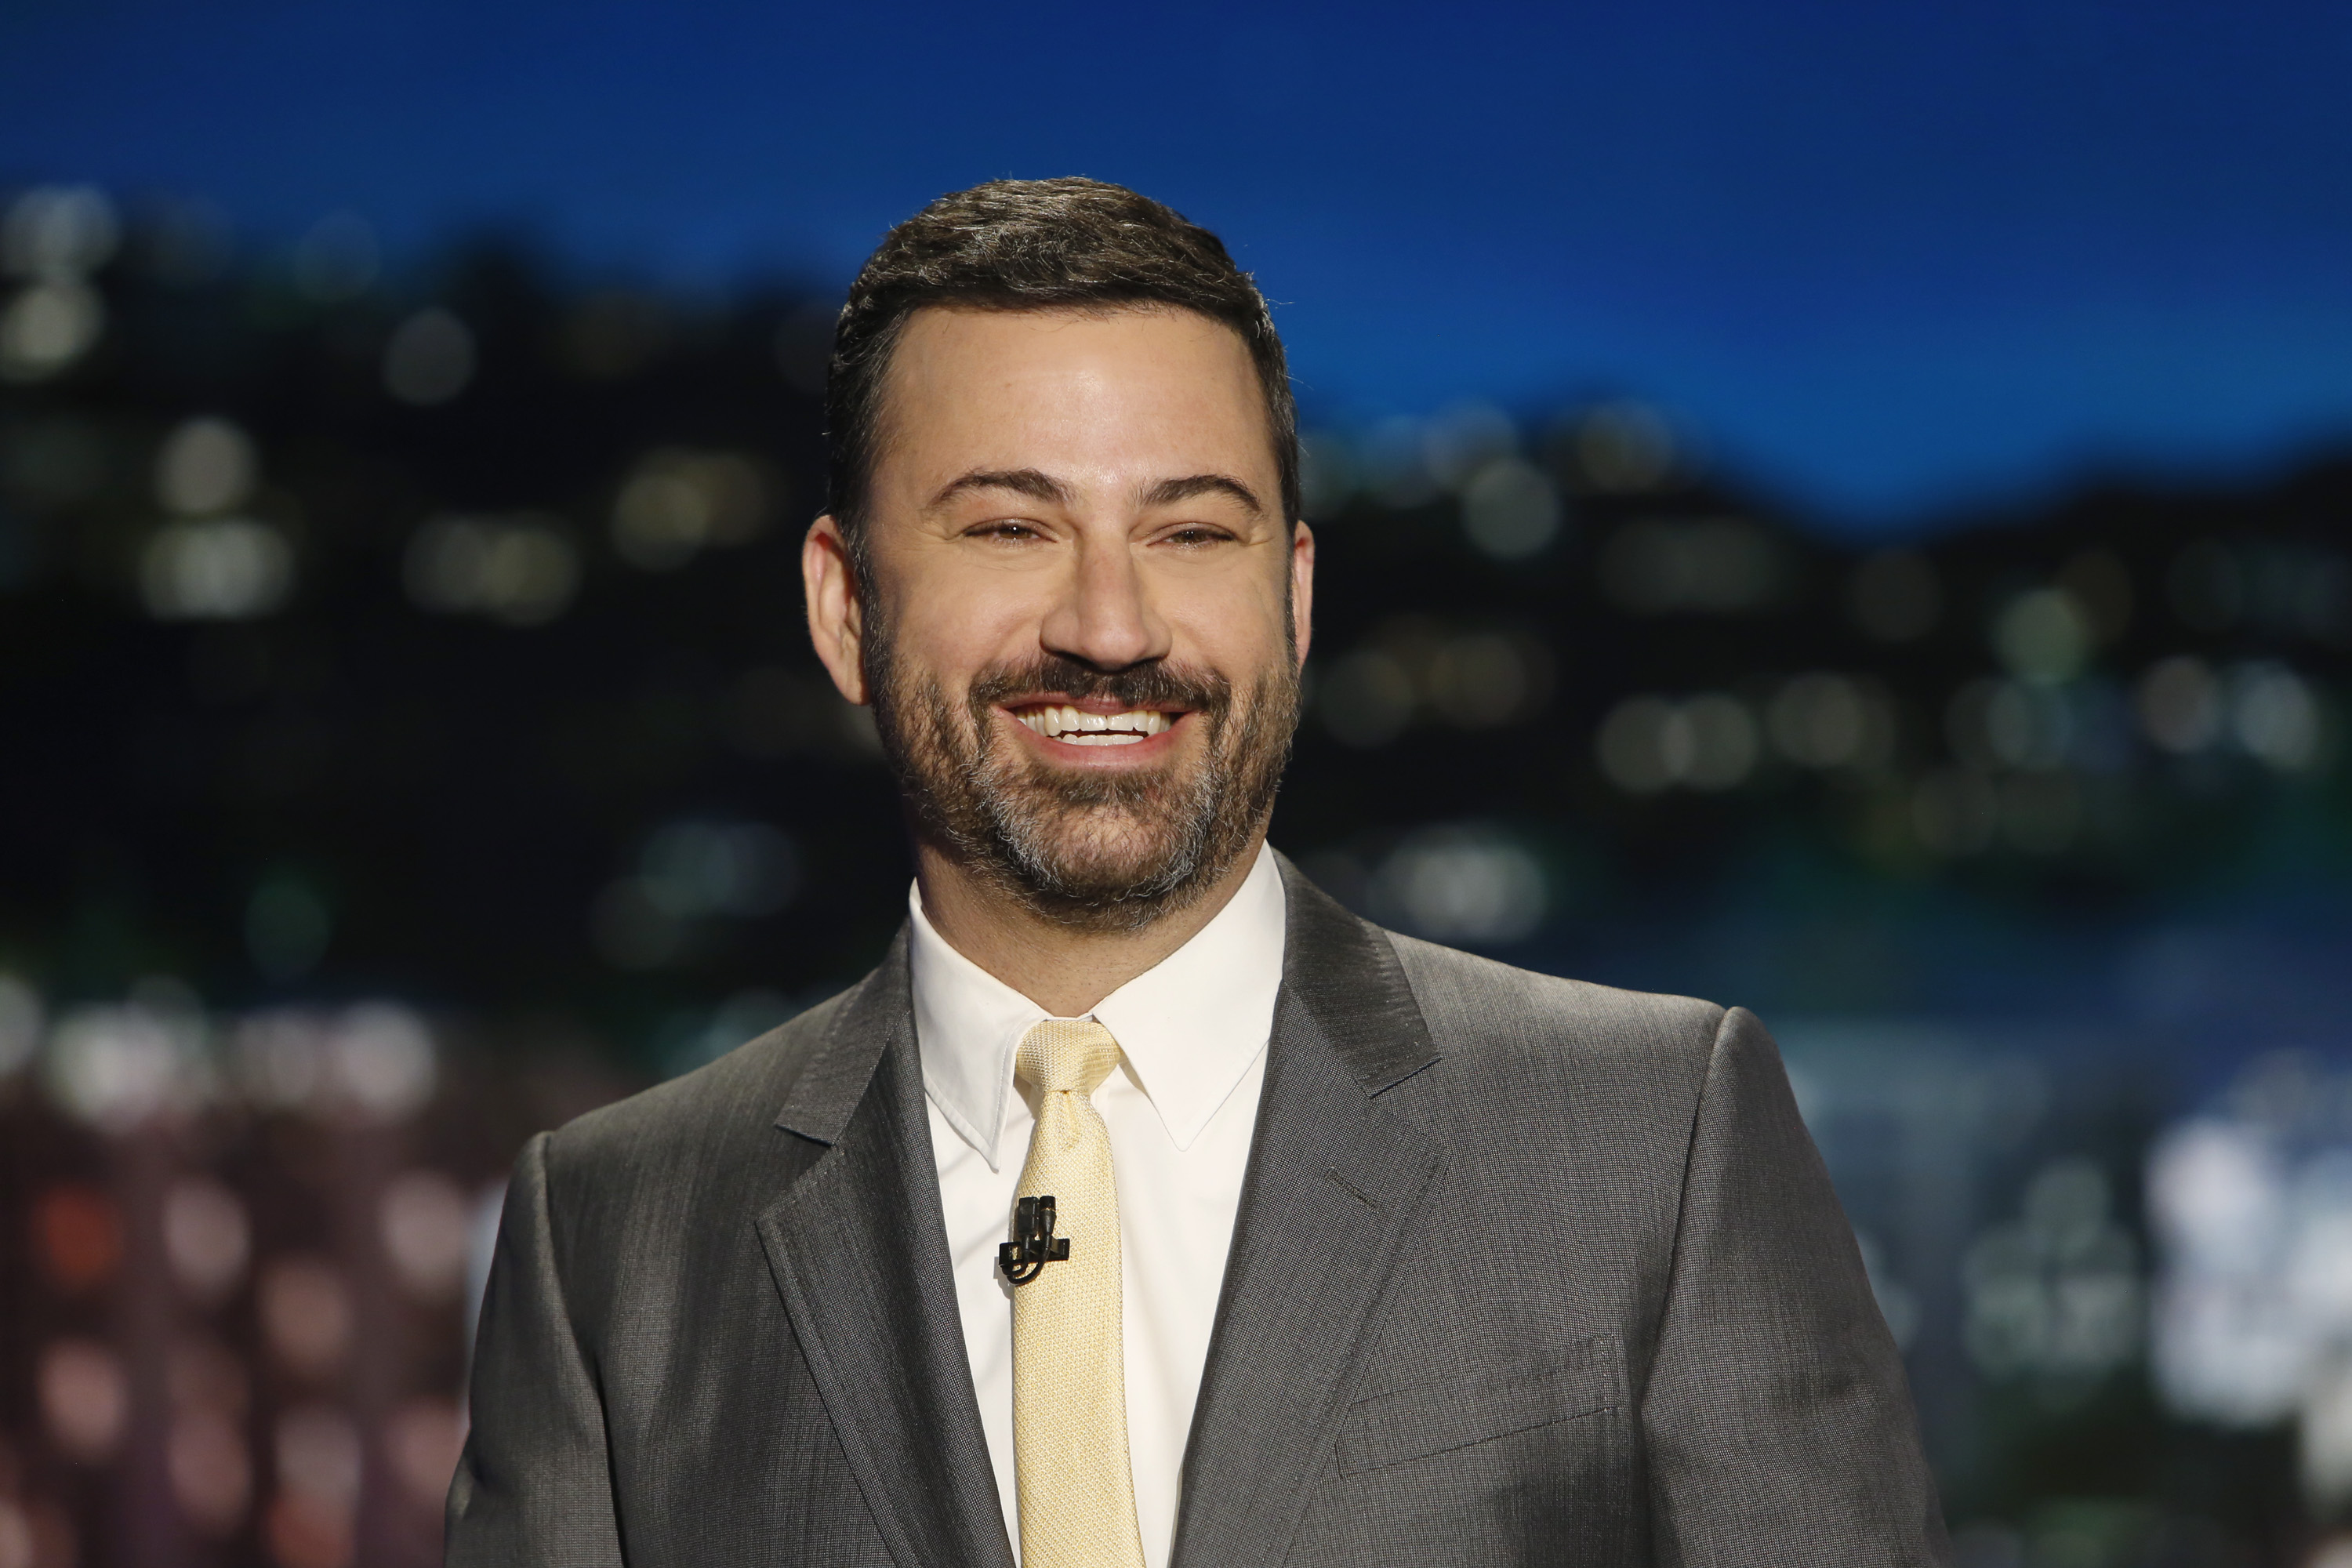 Jimmy Kimmel speaks in front of his audience at 'Jimmy Kimmel Live.'